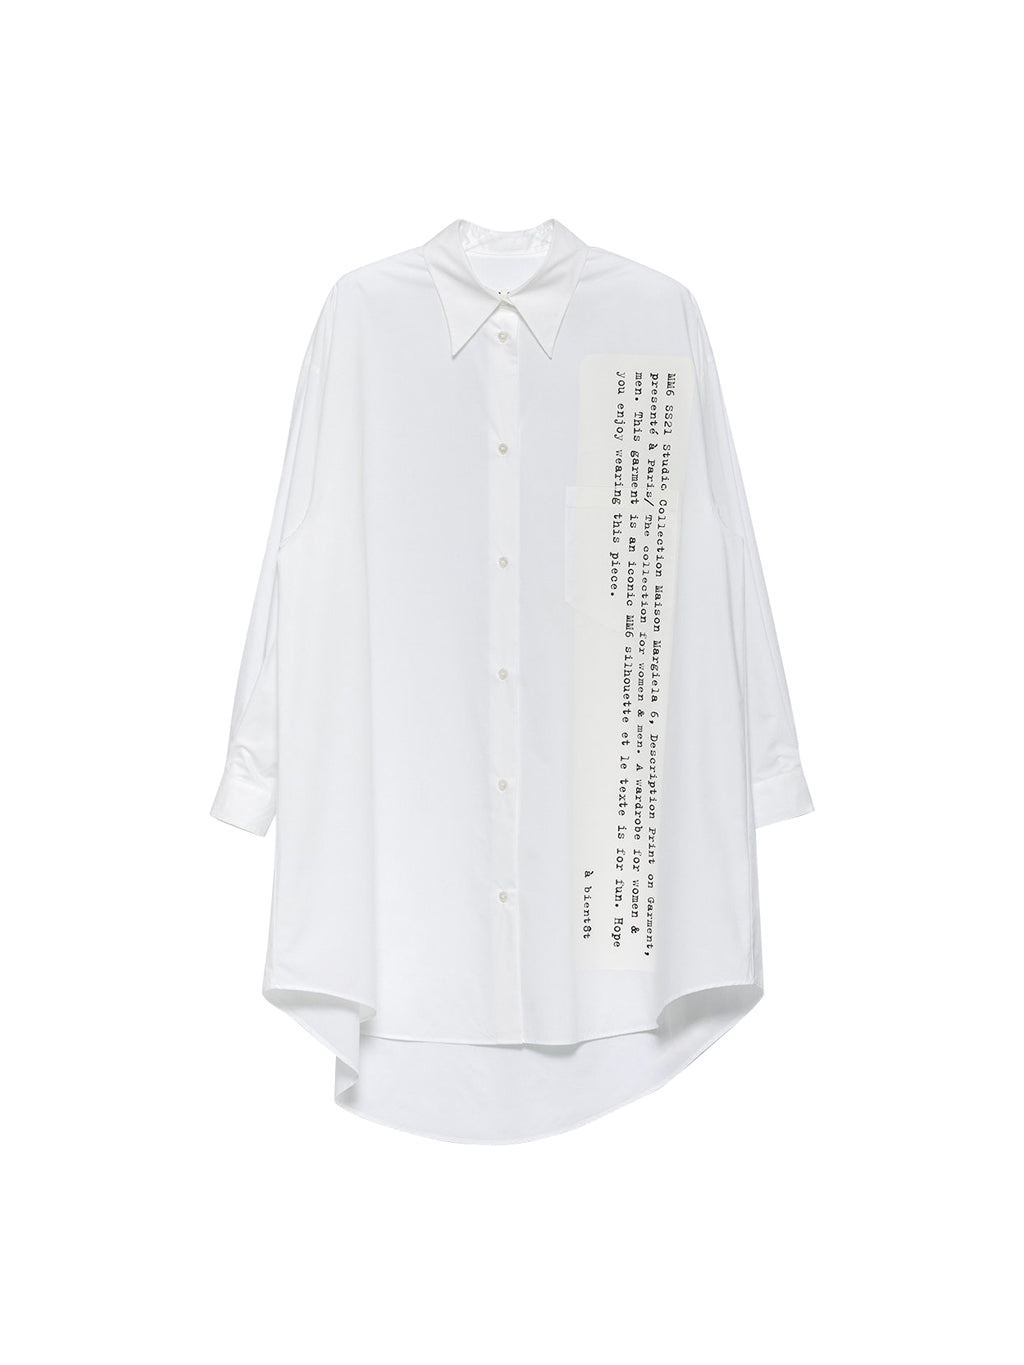 White Text Print Dress Shirts